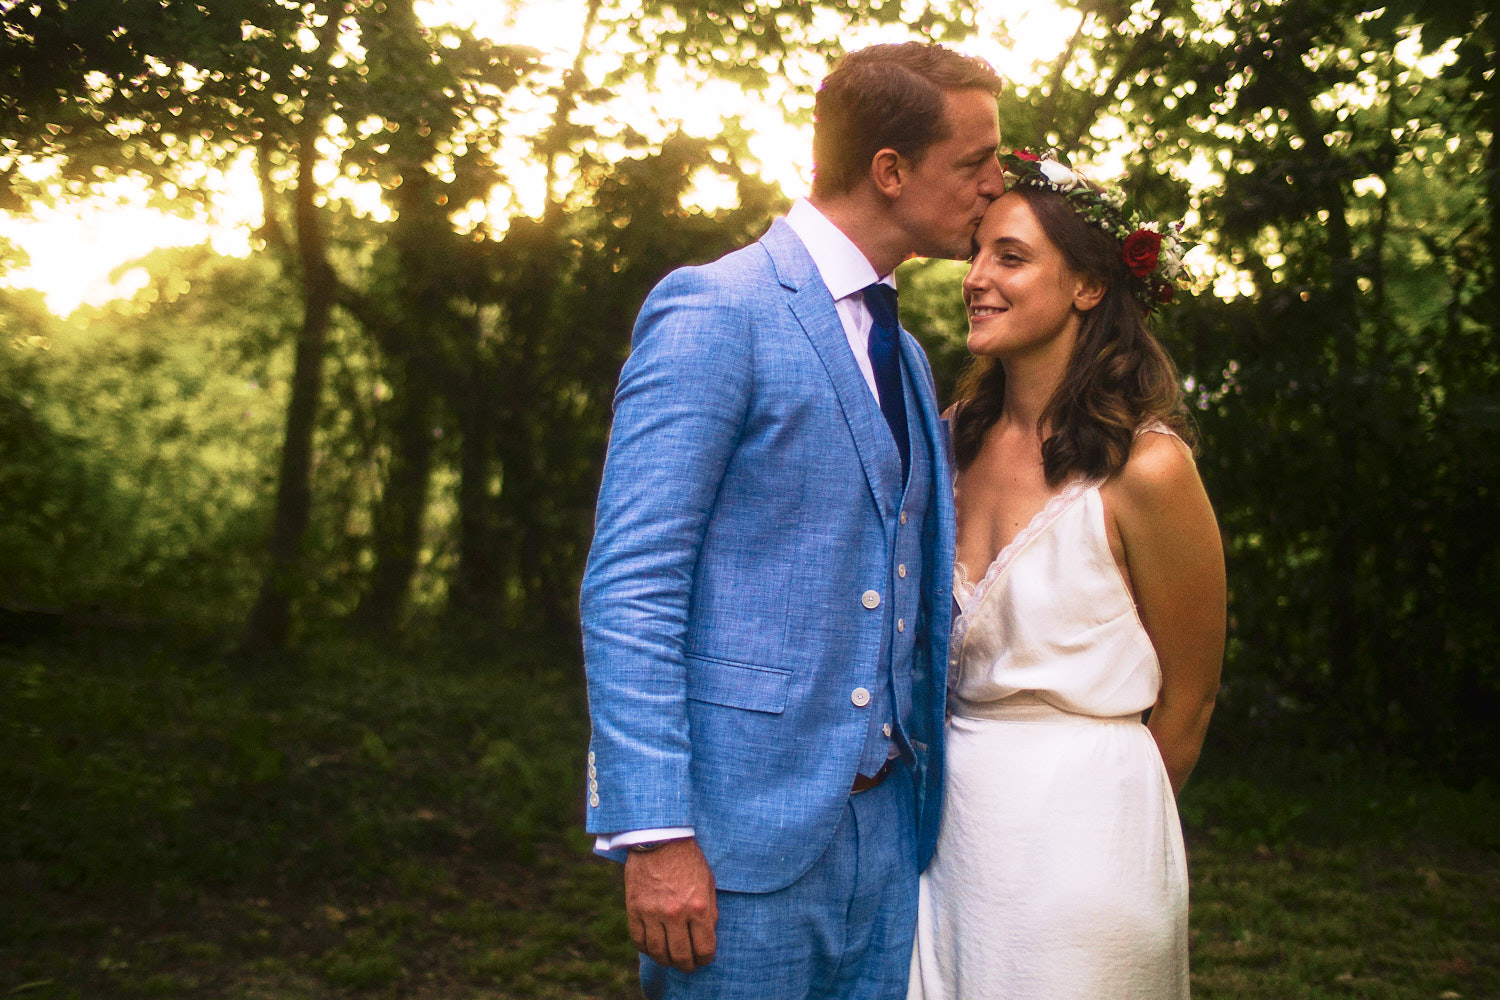 A groom in a blue suit kisses the brde on her forehead in a garden